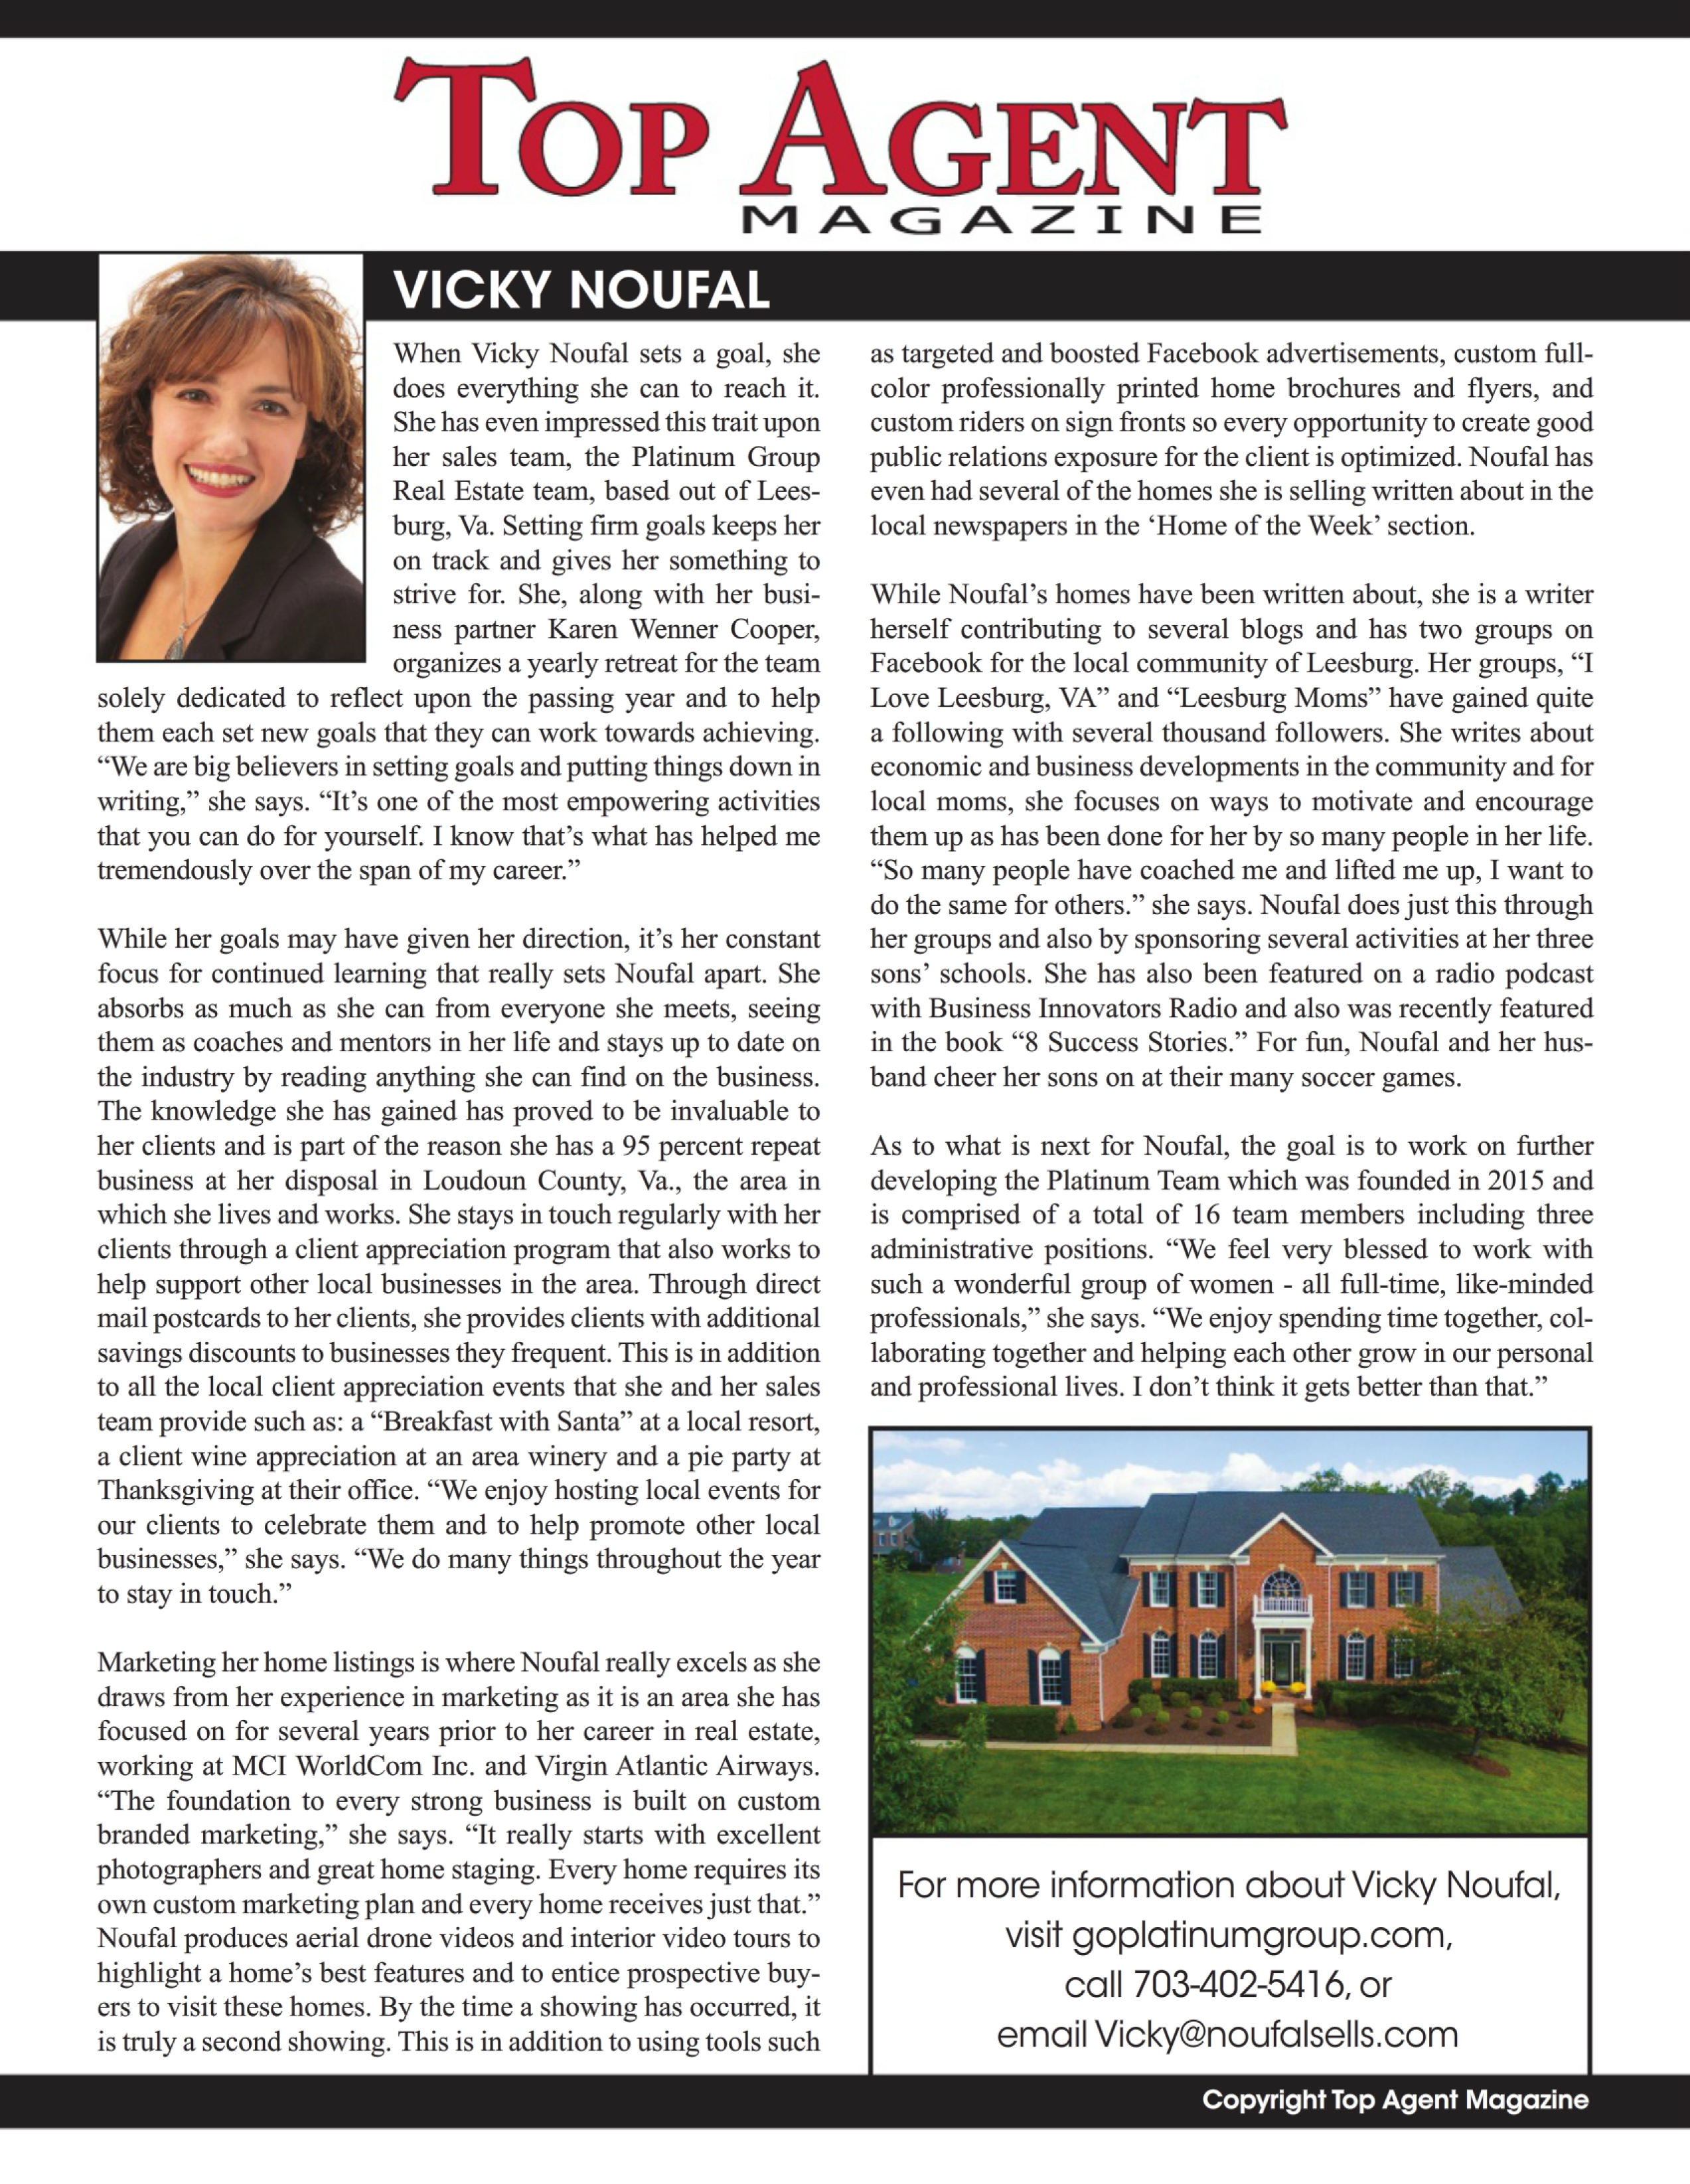 Top Agent Magazine - Vicky Noufal